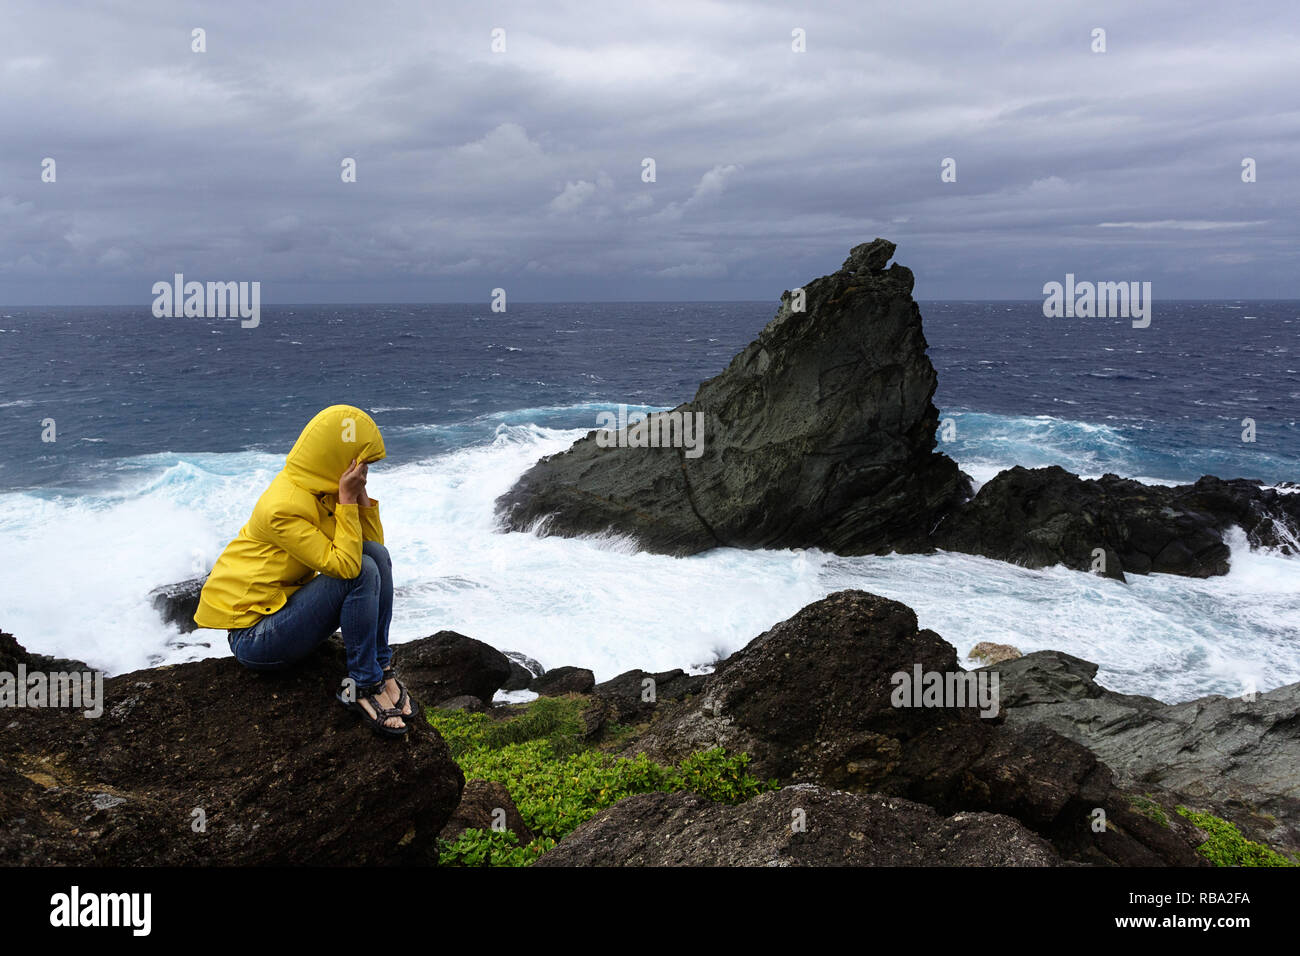 Woman in yellow jacket freezing on a rock looking at rough